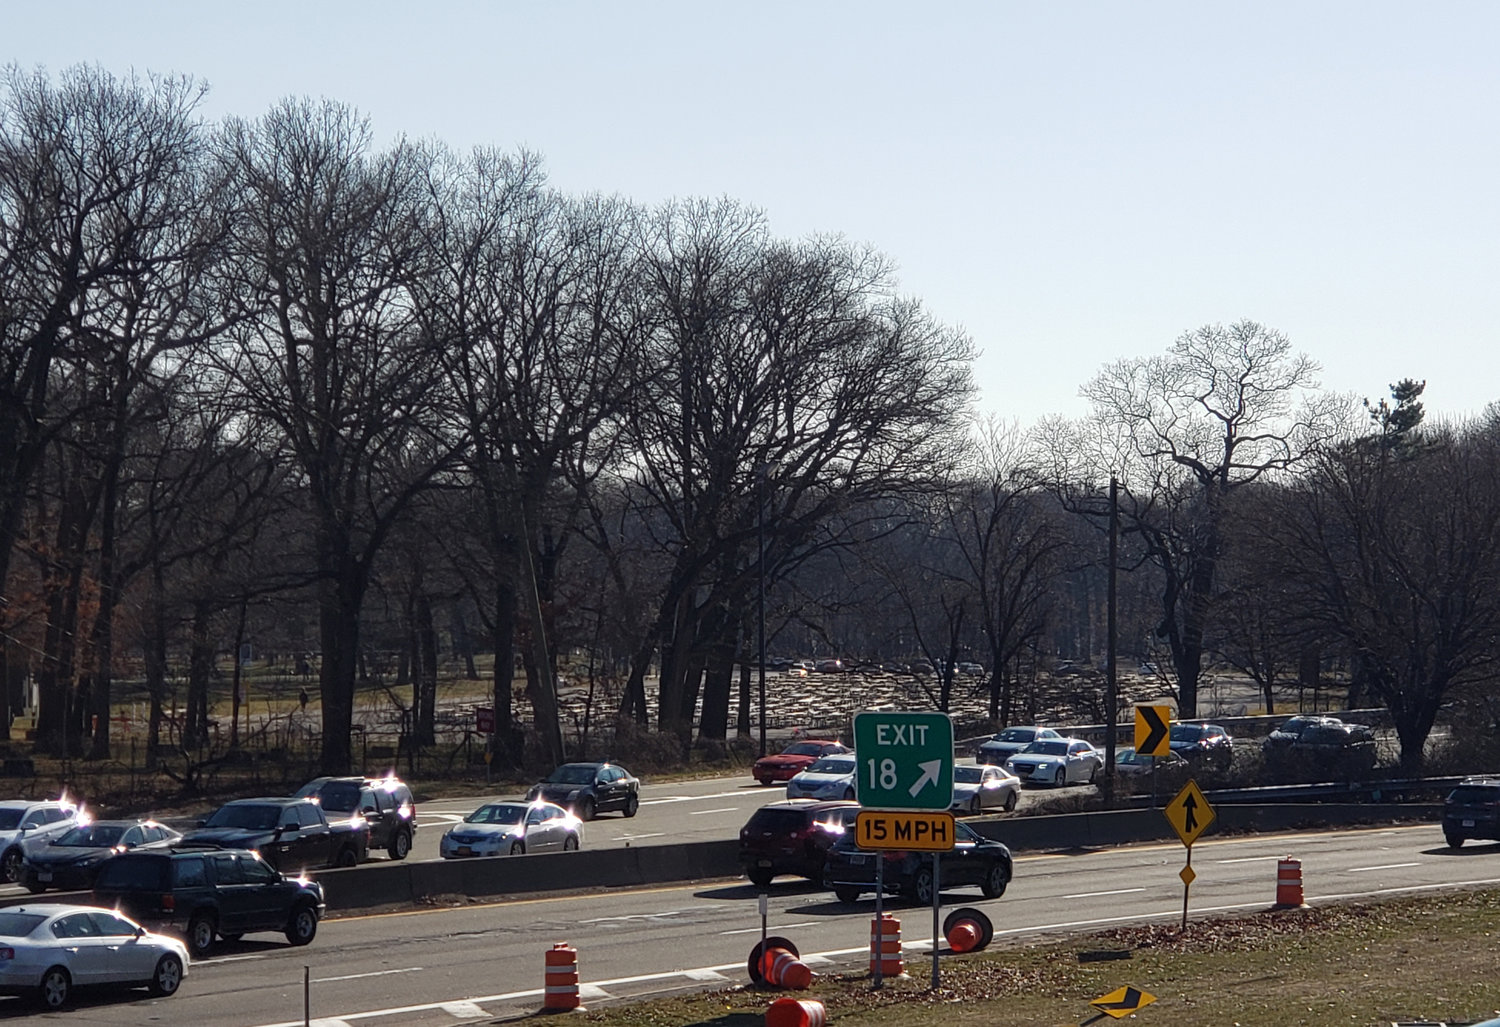 Residents have been concerned over traffic safety near Exit 18 on the Southern State Parkway for years.